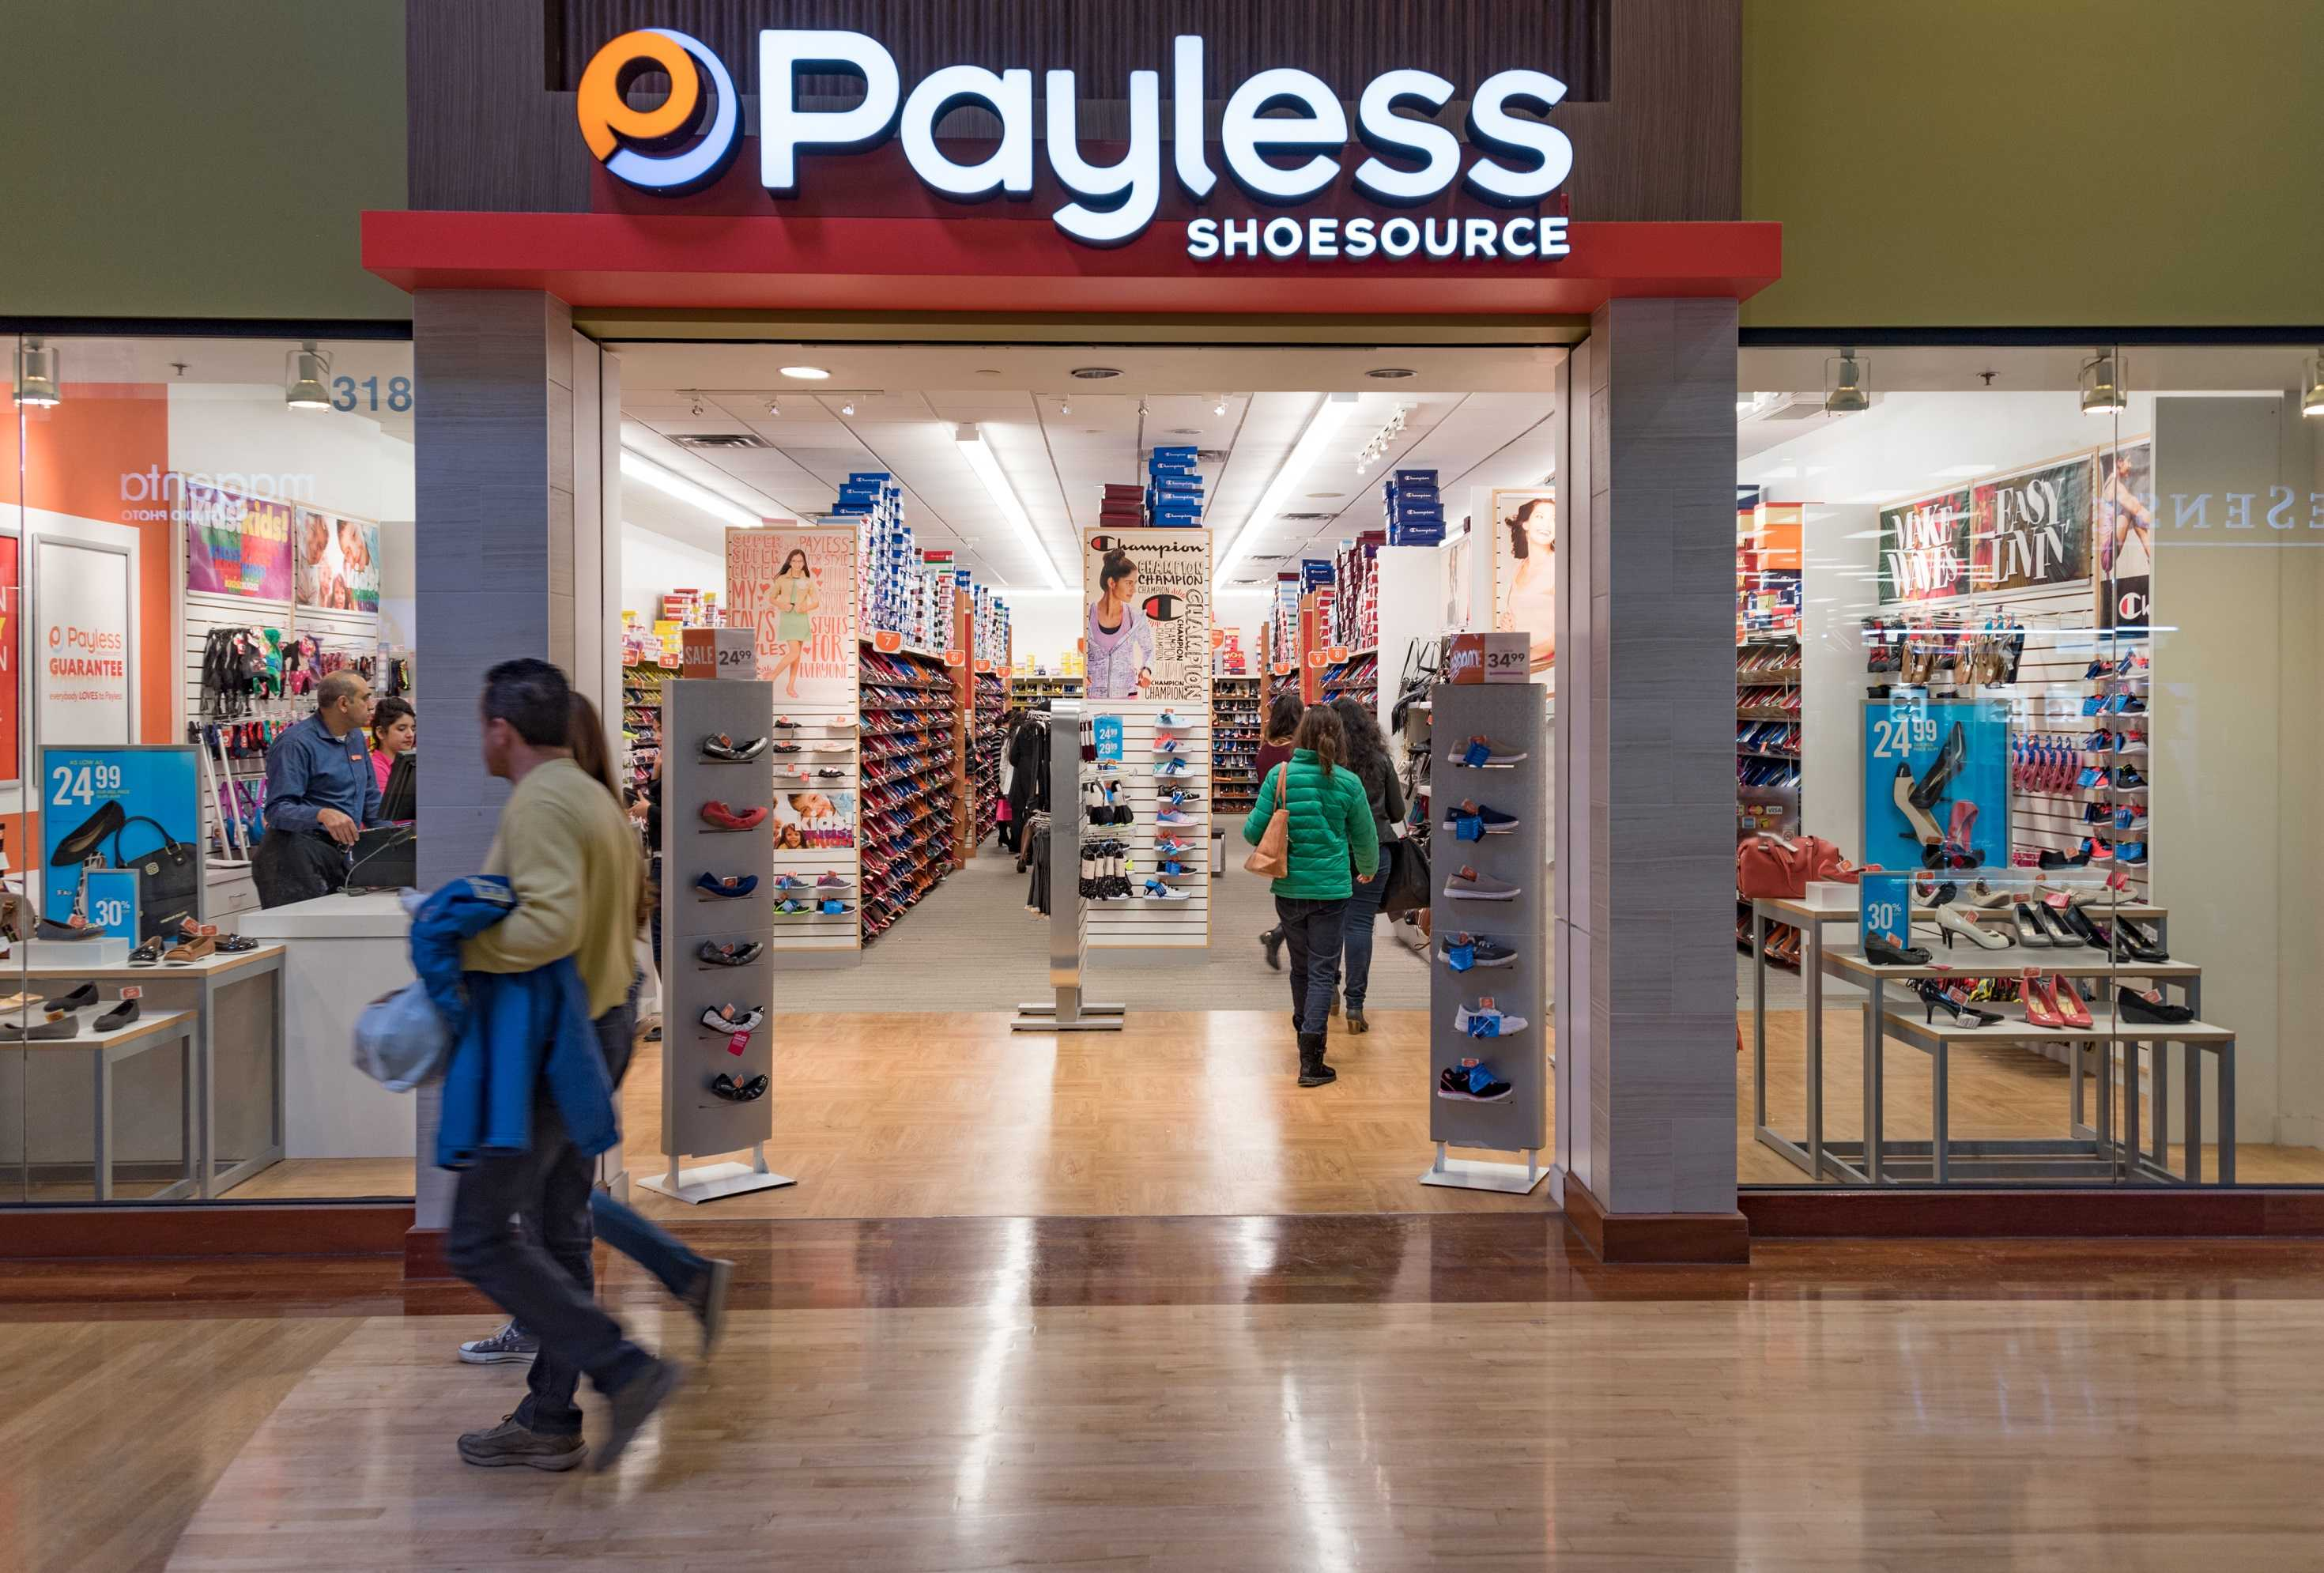 114dbb56b167 Toddler dies after mirror falls on her at Payless store - Stockton ...